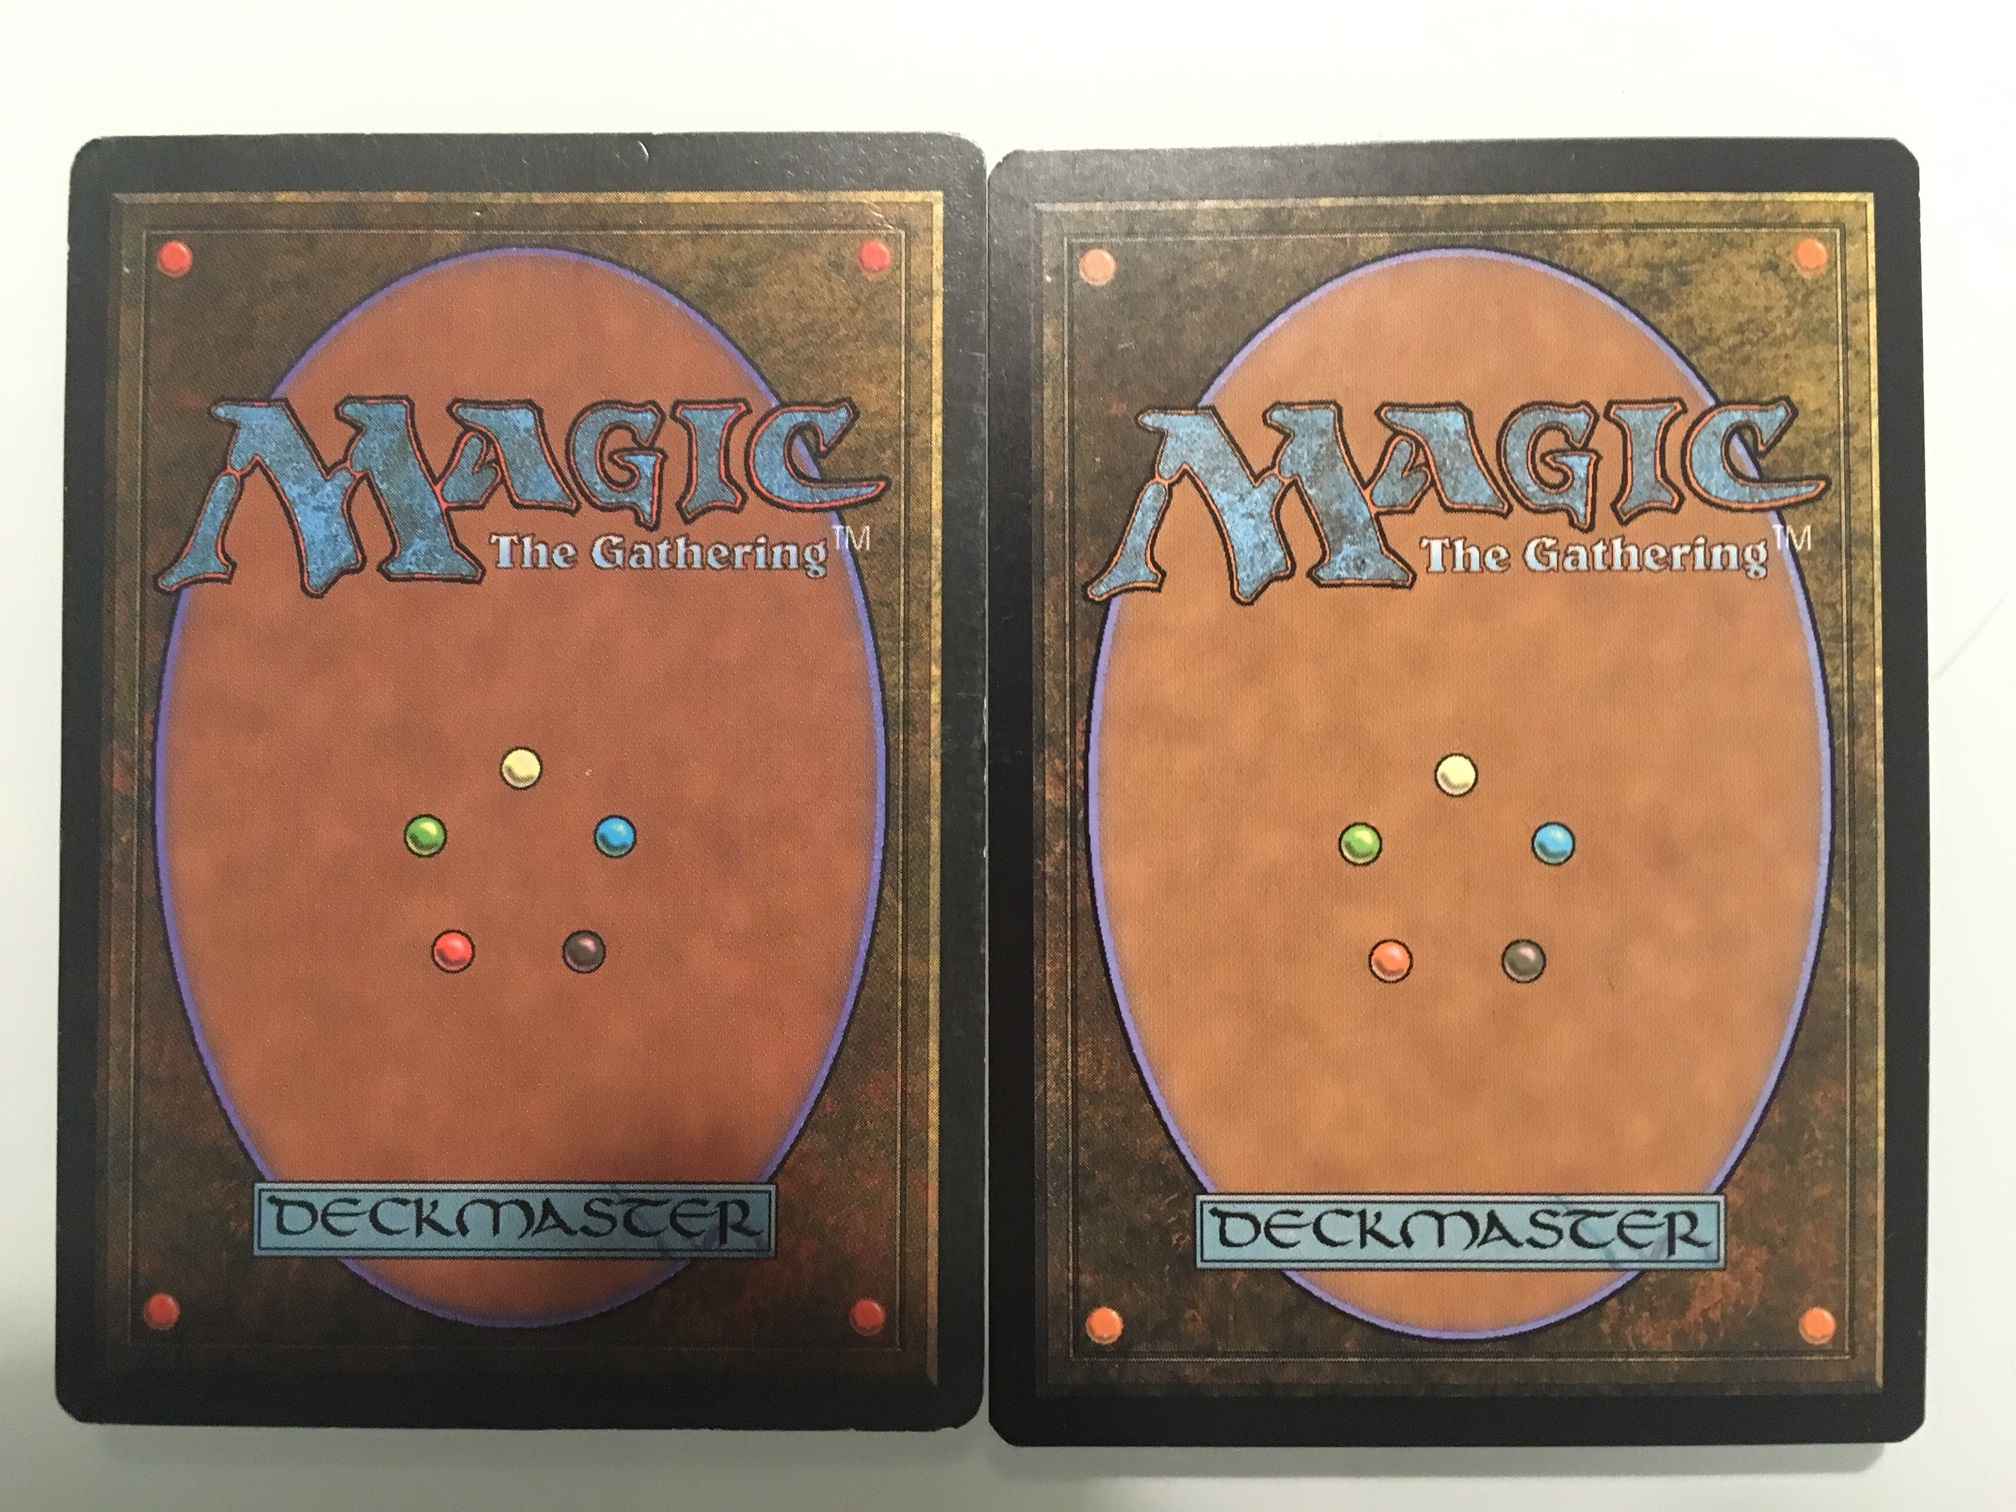 Porta Di Casa Non Si Chiude 10 Cose Che Forse Non Sapete Su Magic The Gathering Wired